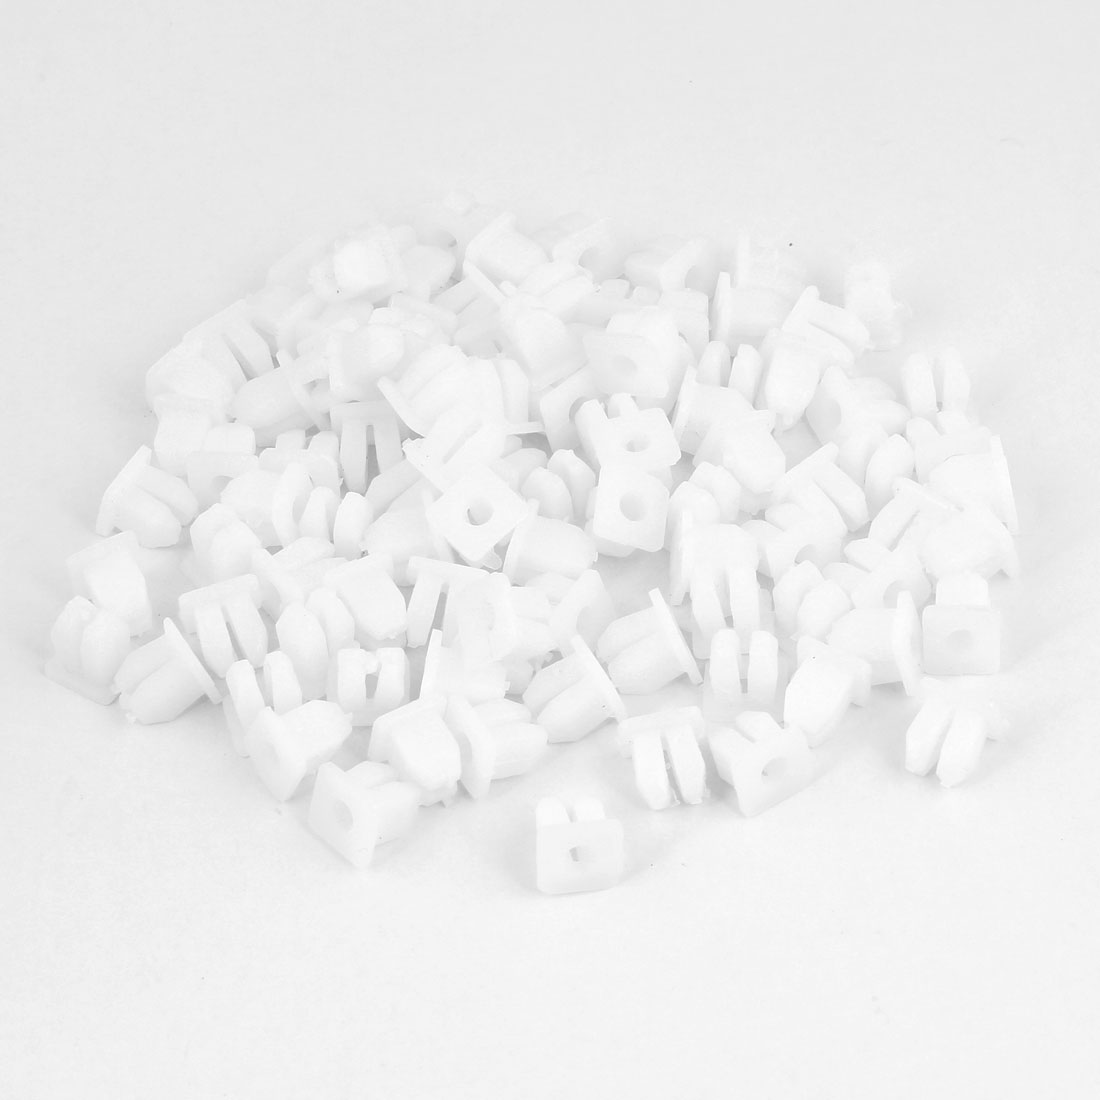 100 Pcs Car 4mm Hole Plastic Rivets Fastener Fender Bumper Push Pin Clips White